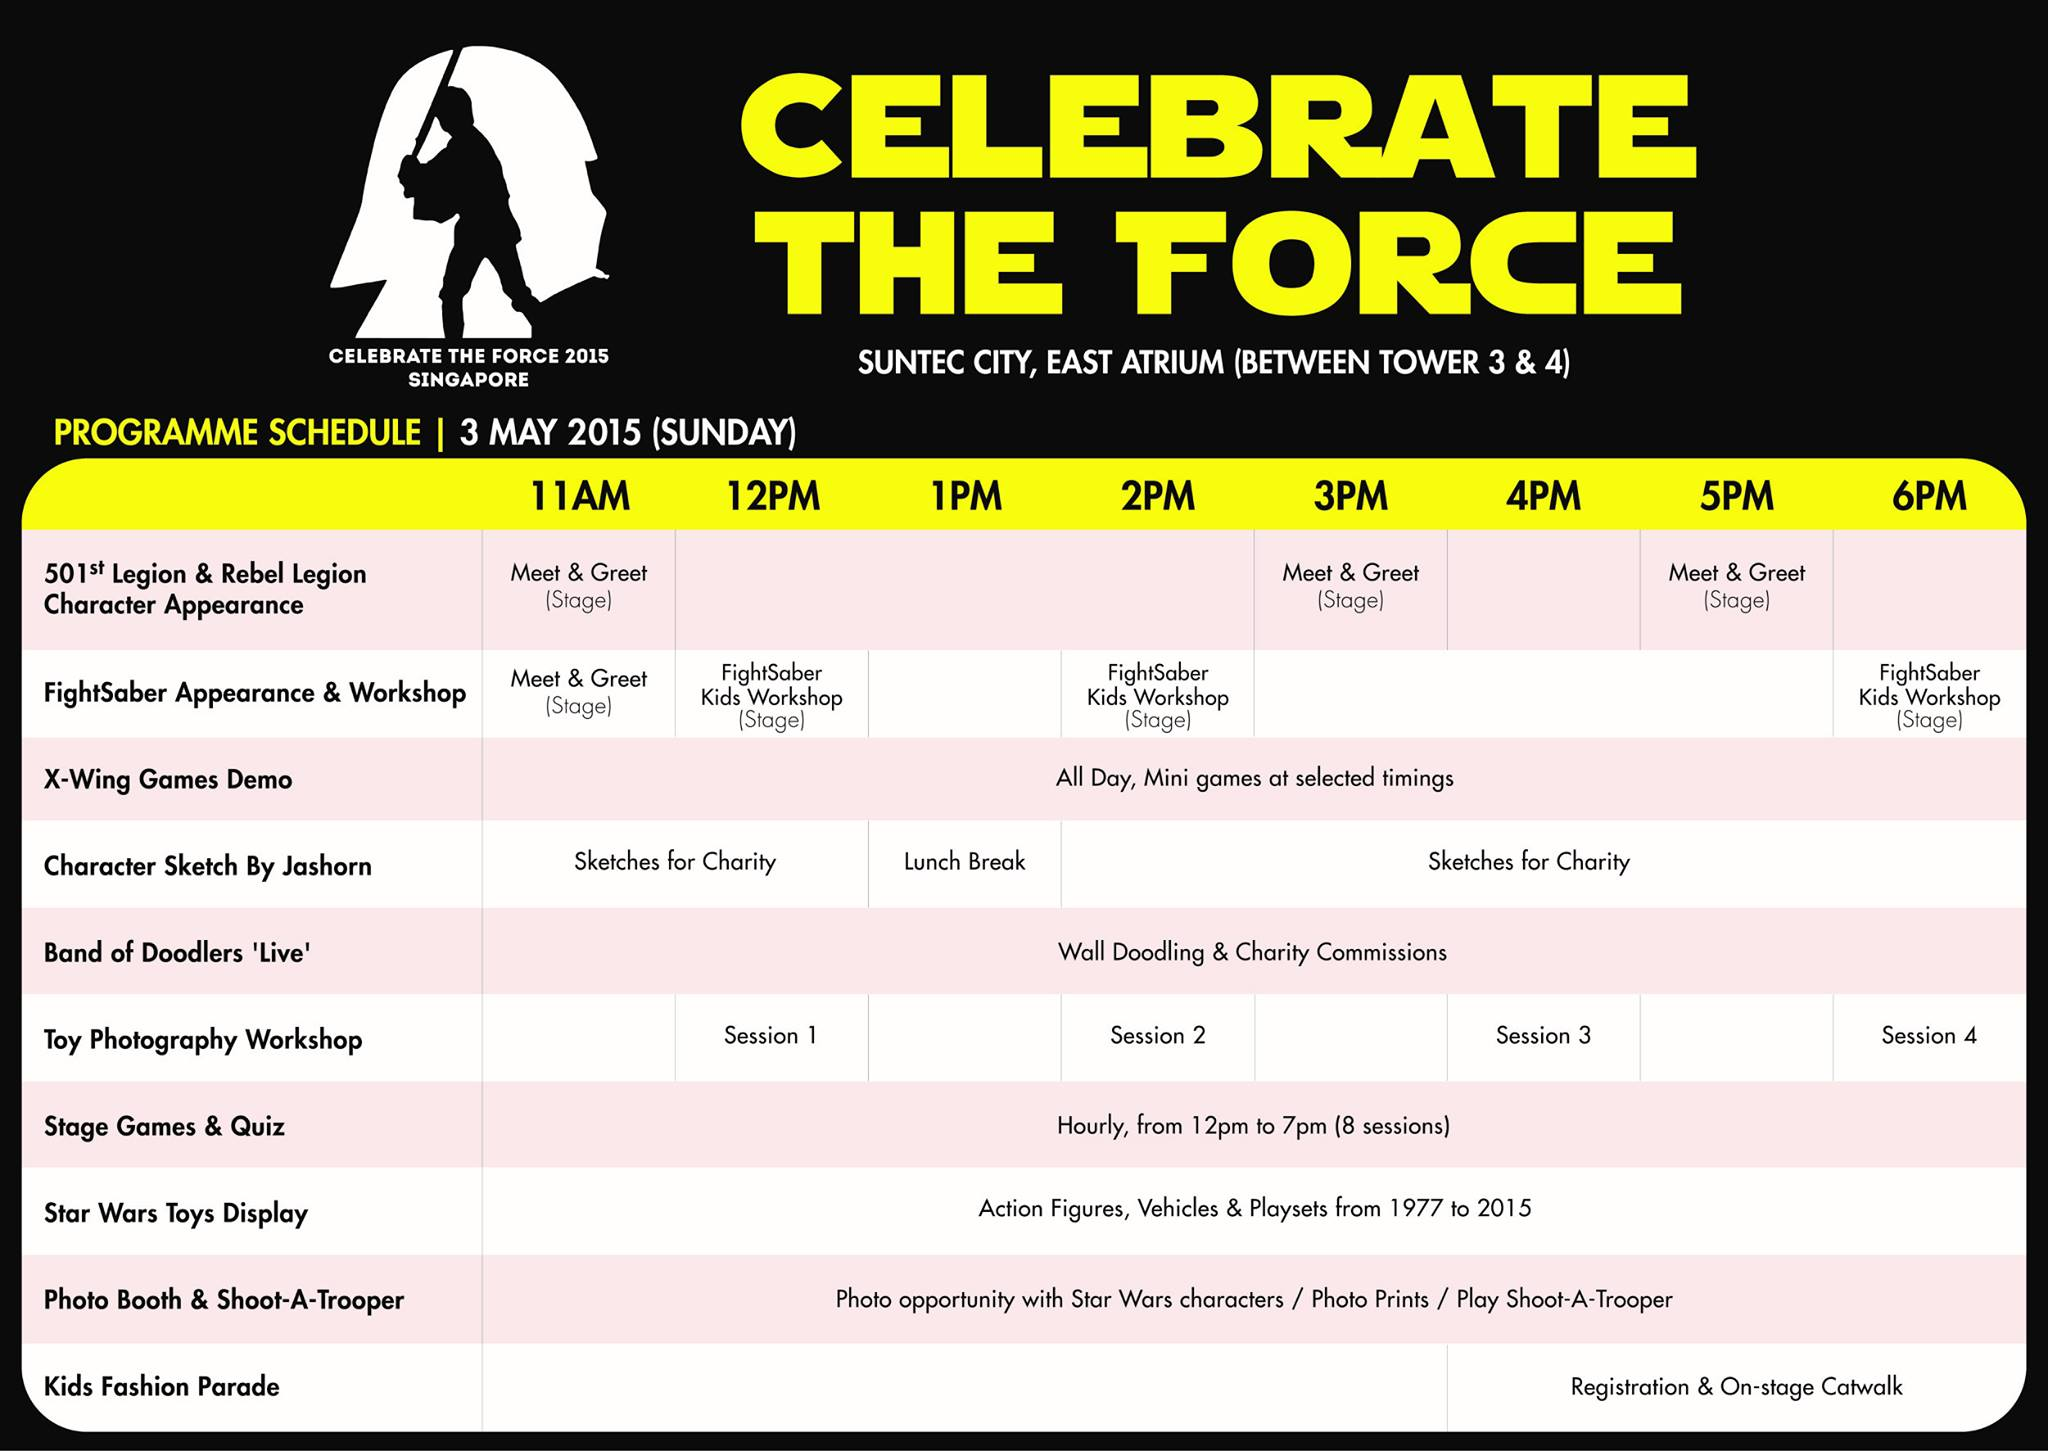 Celebrate the Force May the 4th 2015 Singapore Day 2 May 3